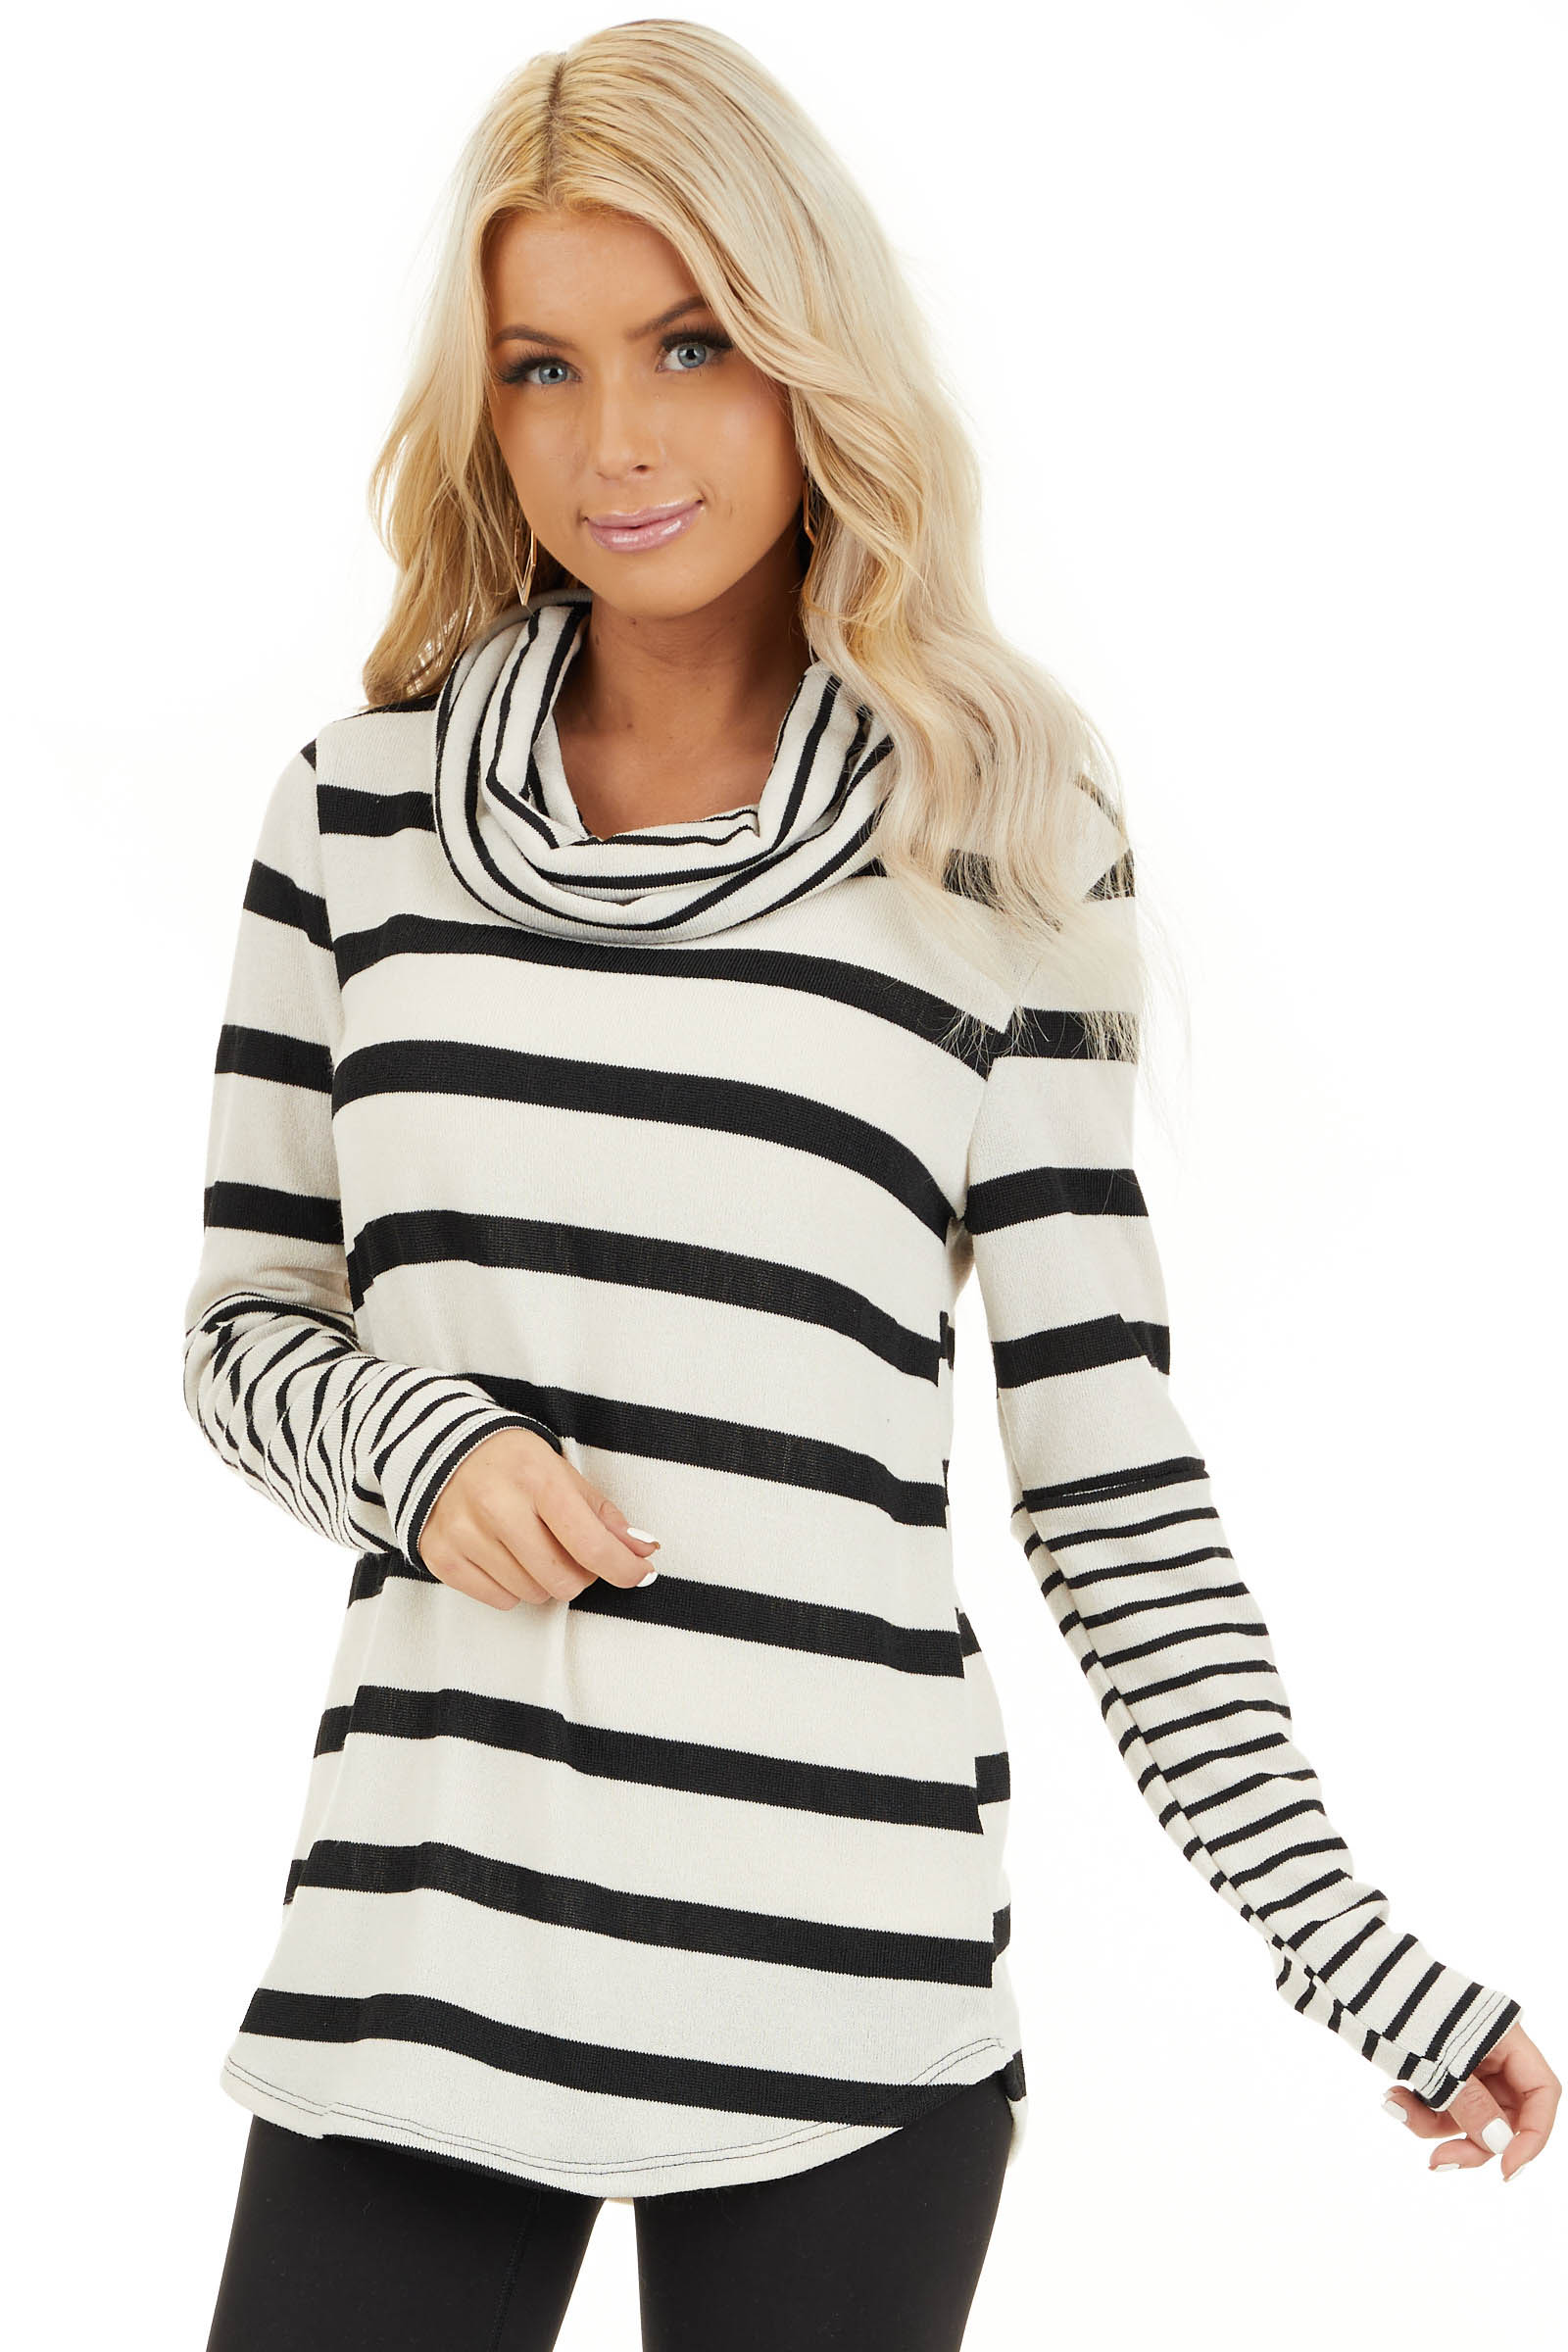 Ivory and Black Striped Long Sleeve Top with Cowl Neckline front close up